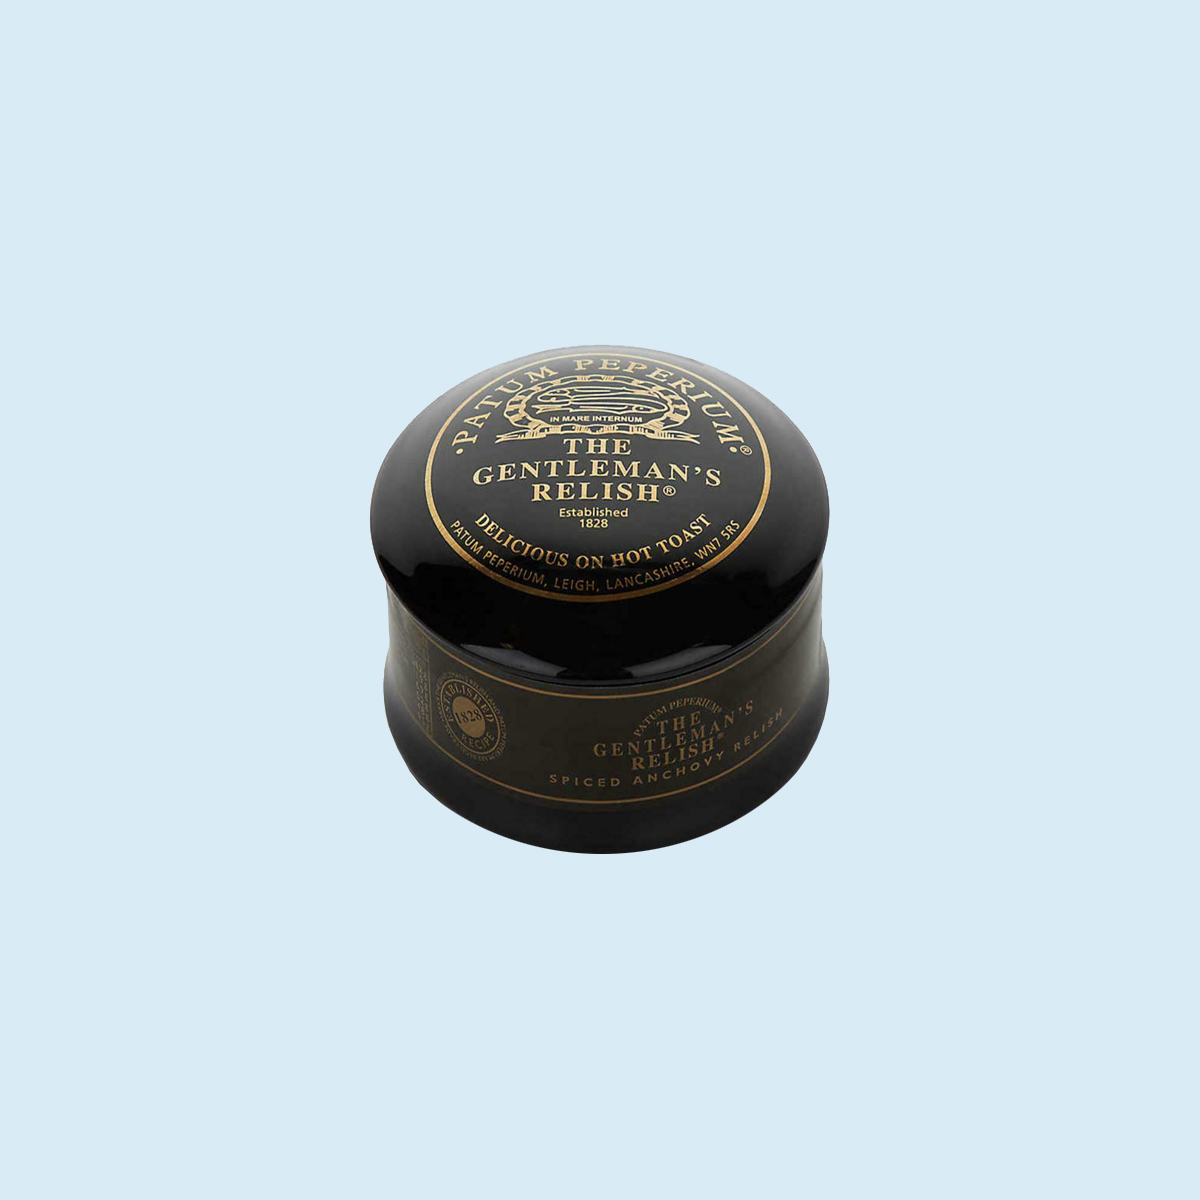 Patum Peperium Black Opal Anchovy Relish 81g